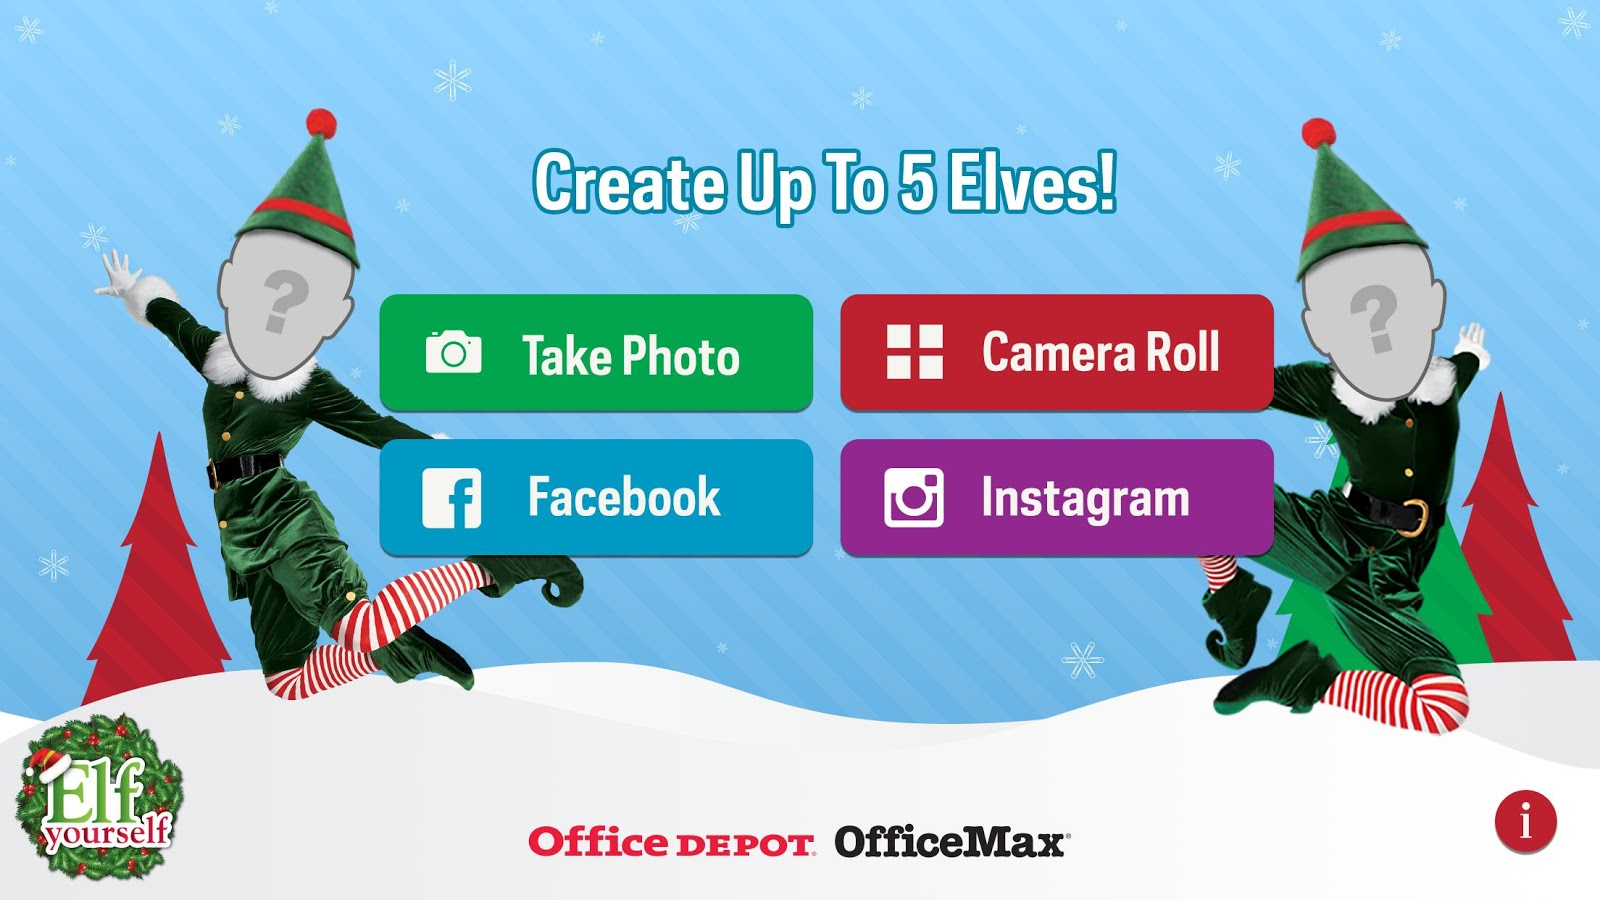 Nov 15,  · Simply upload up to five photos of you, your friends, family and more from your camera roll or Facebook. Select a dance theme, and the app will generate a custom ElfYourself video that you can share via email or post on Facebook/5(K).